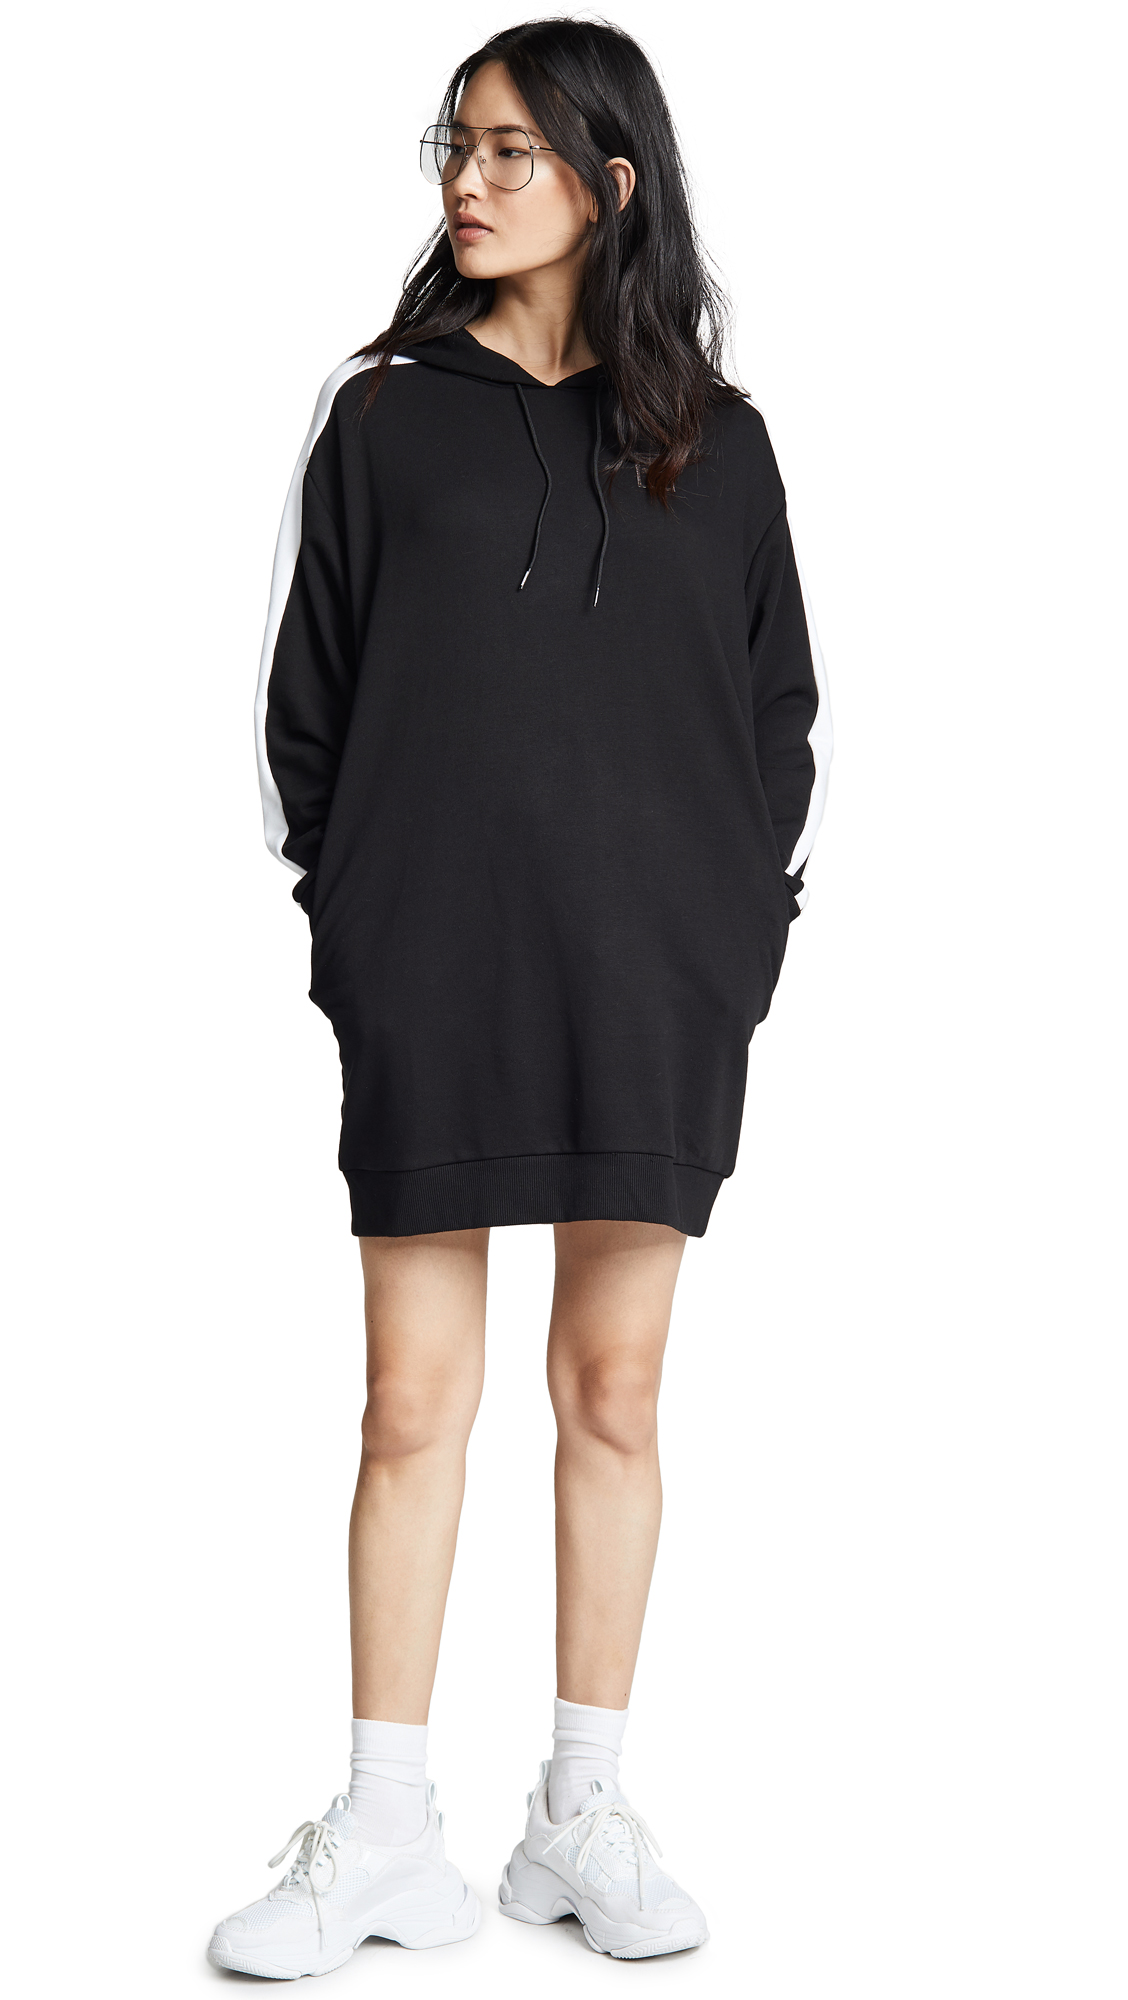 CHAINS T7 HOODED DRESS